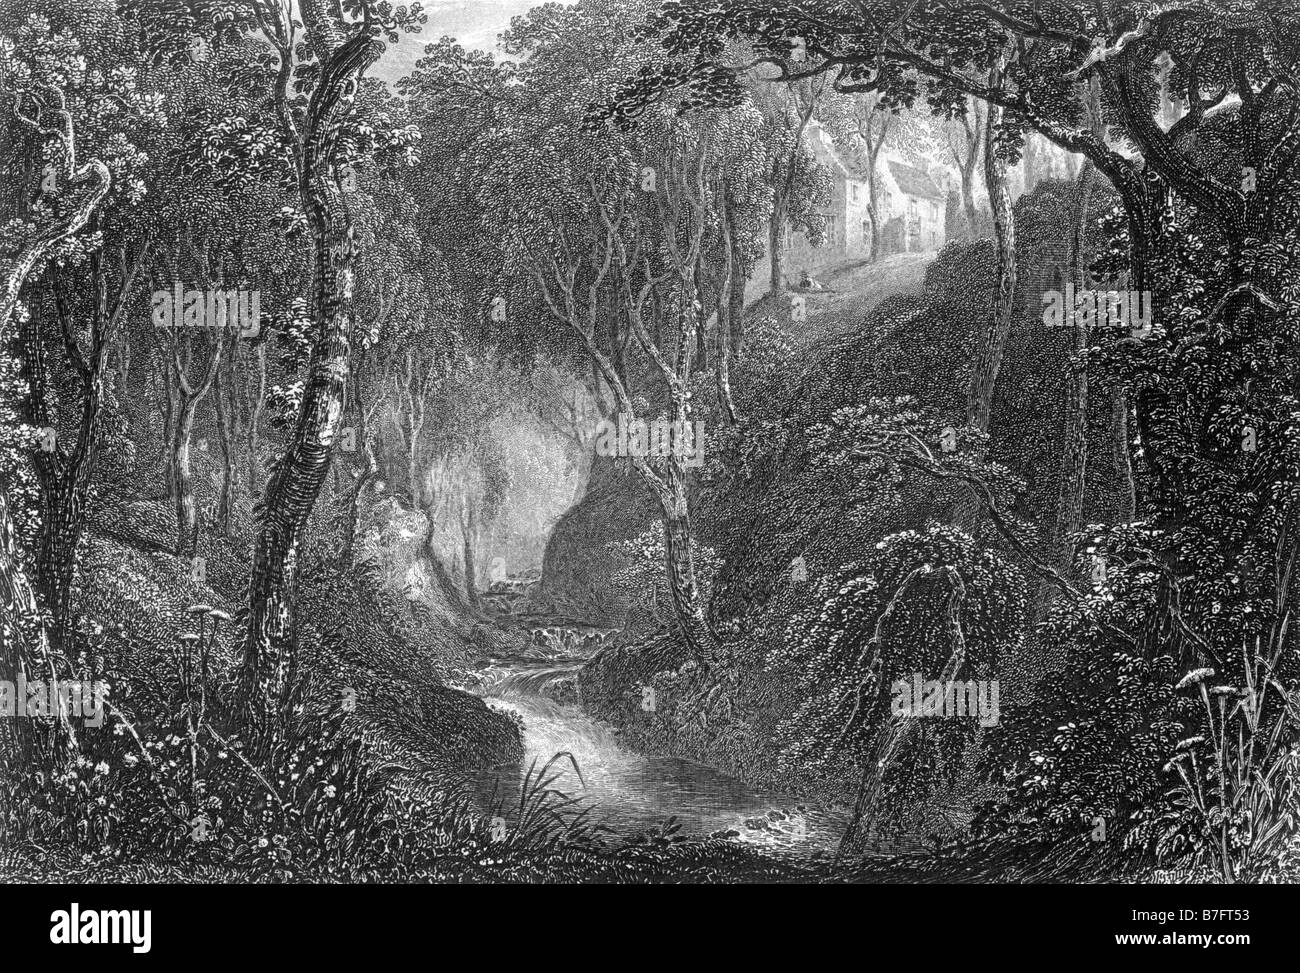 Craigieburn Wood Moffatdale Dumfrieshire Engraving by David Octavius Hill 1802 to 1870 19th Century Illustration - Stock Image